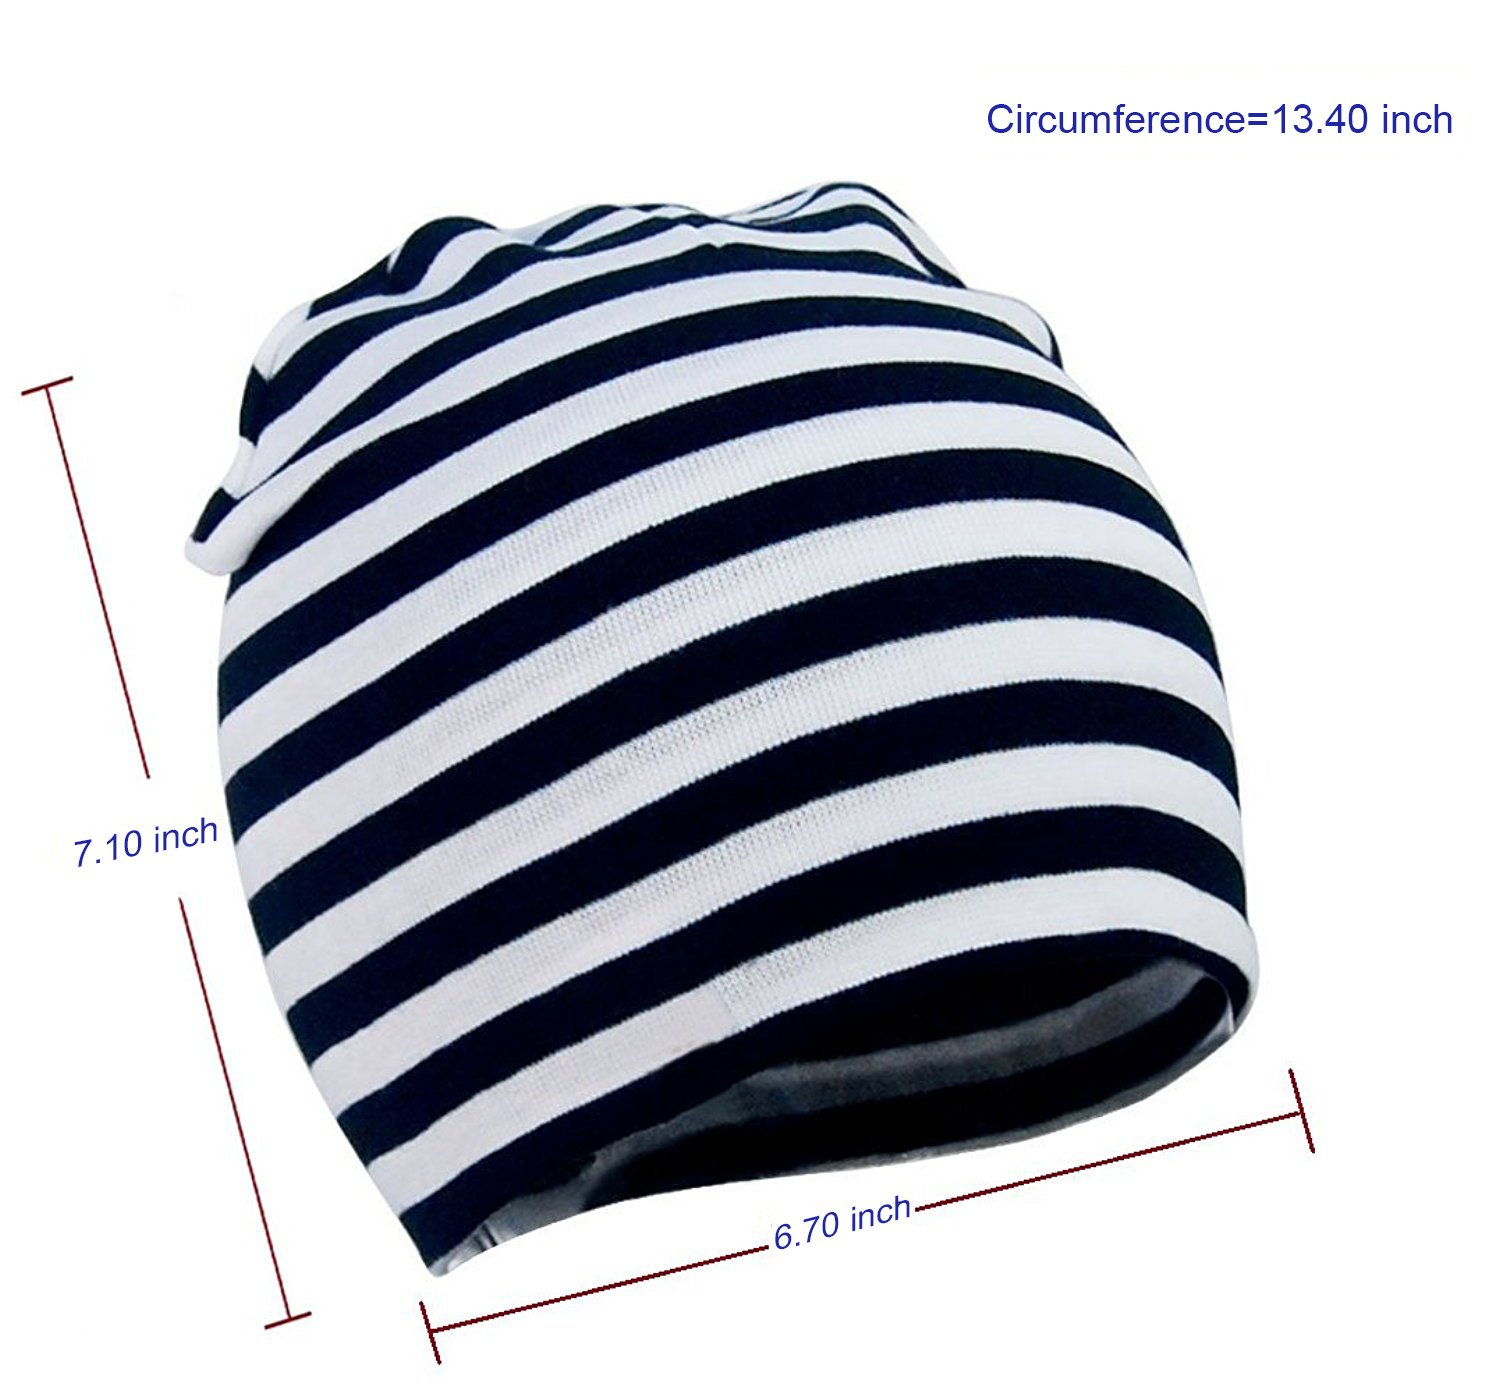 American Trends Toddler Infant Cotton Hat Unisex Knit Stretchy Baby Caps Casual Newborn Kids Lovely Soft Warm Beanies A 3 Pack-Black Stripe Grey Large (1-4 Years) by American Trends (Image #3)